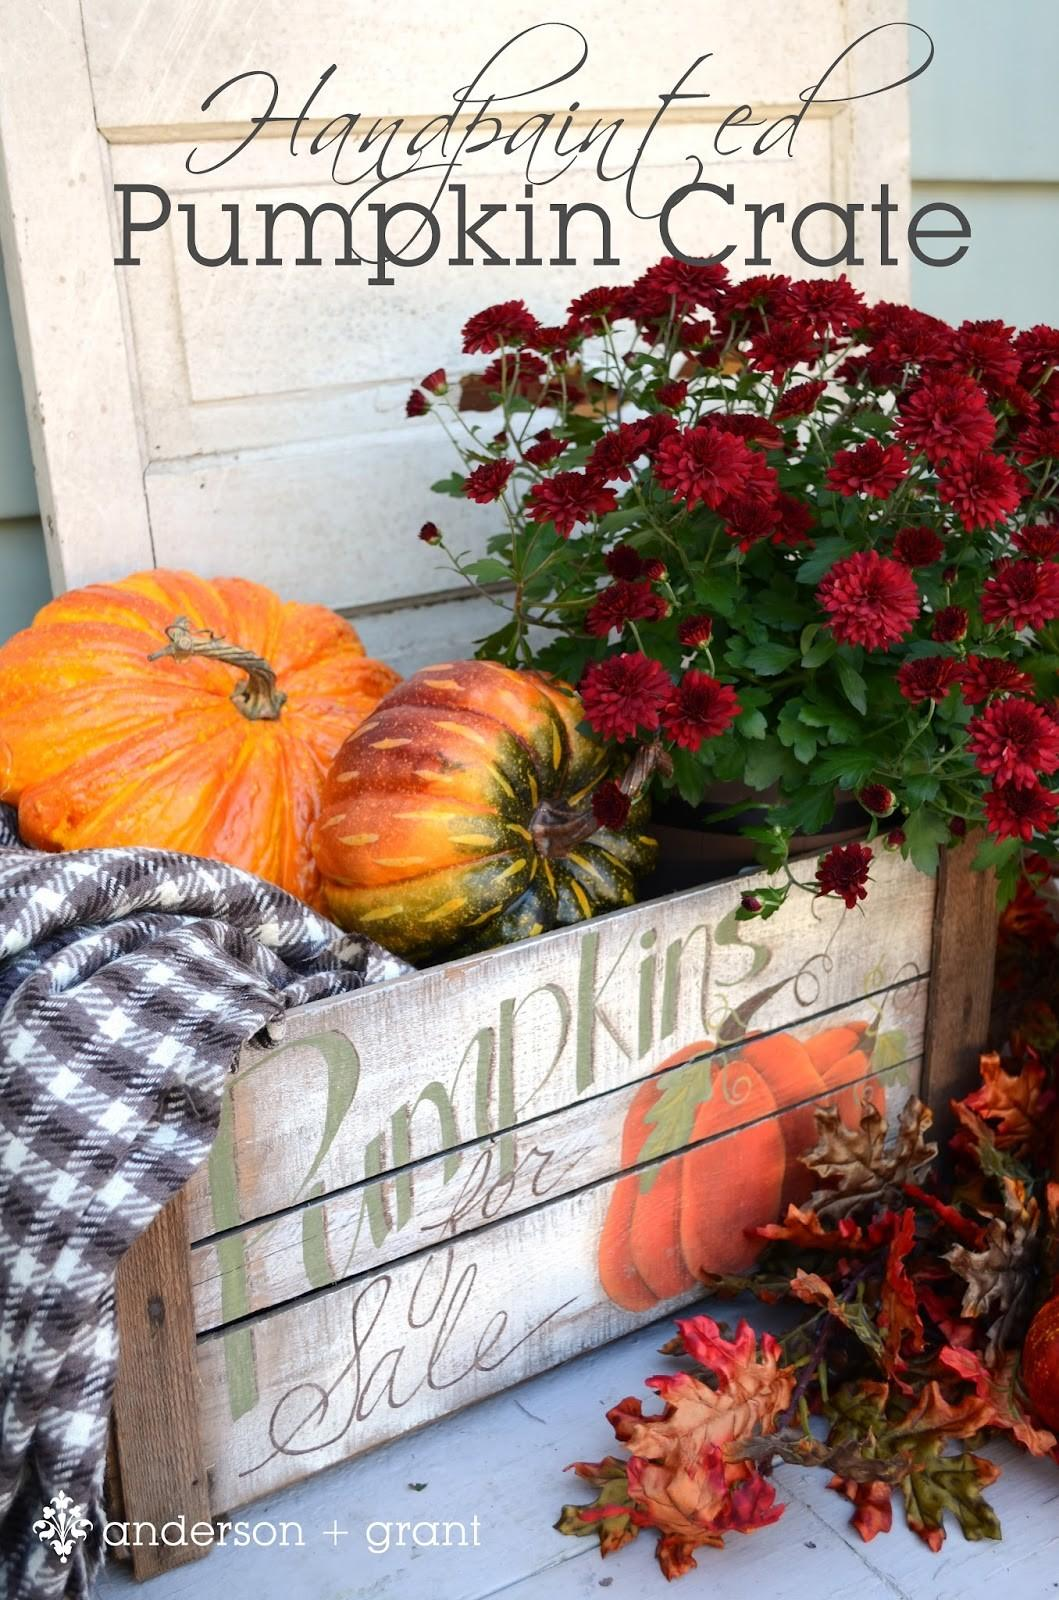 Handpainted Pumpkin Crate Mabey She Made